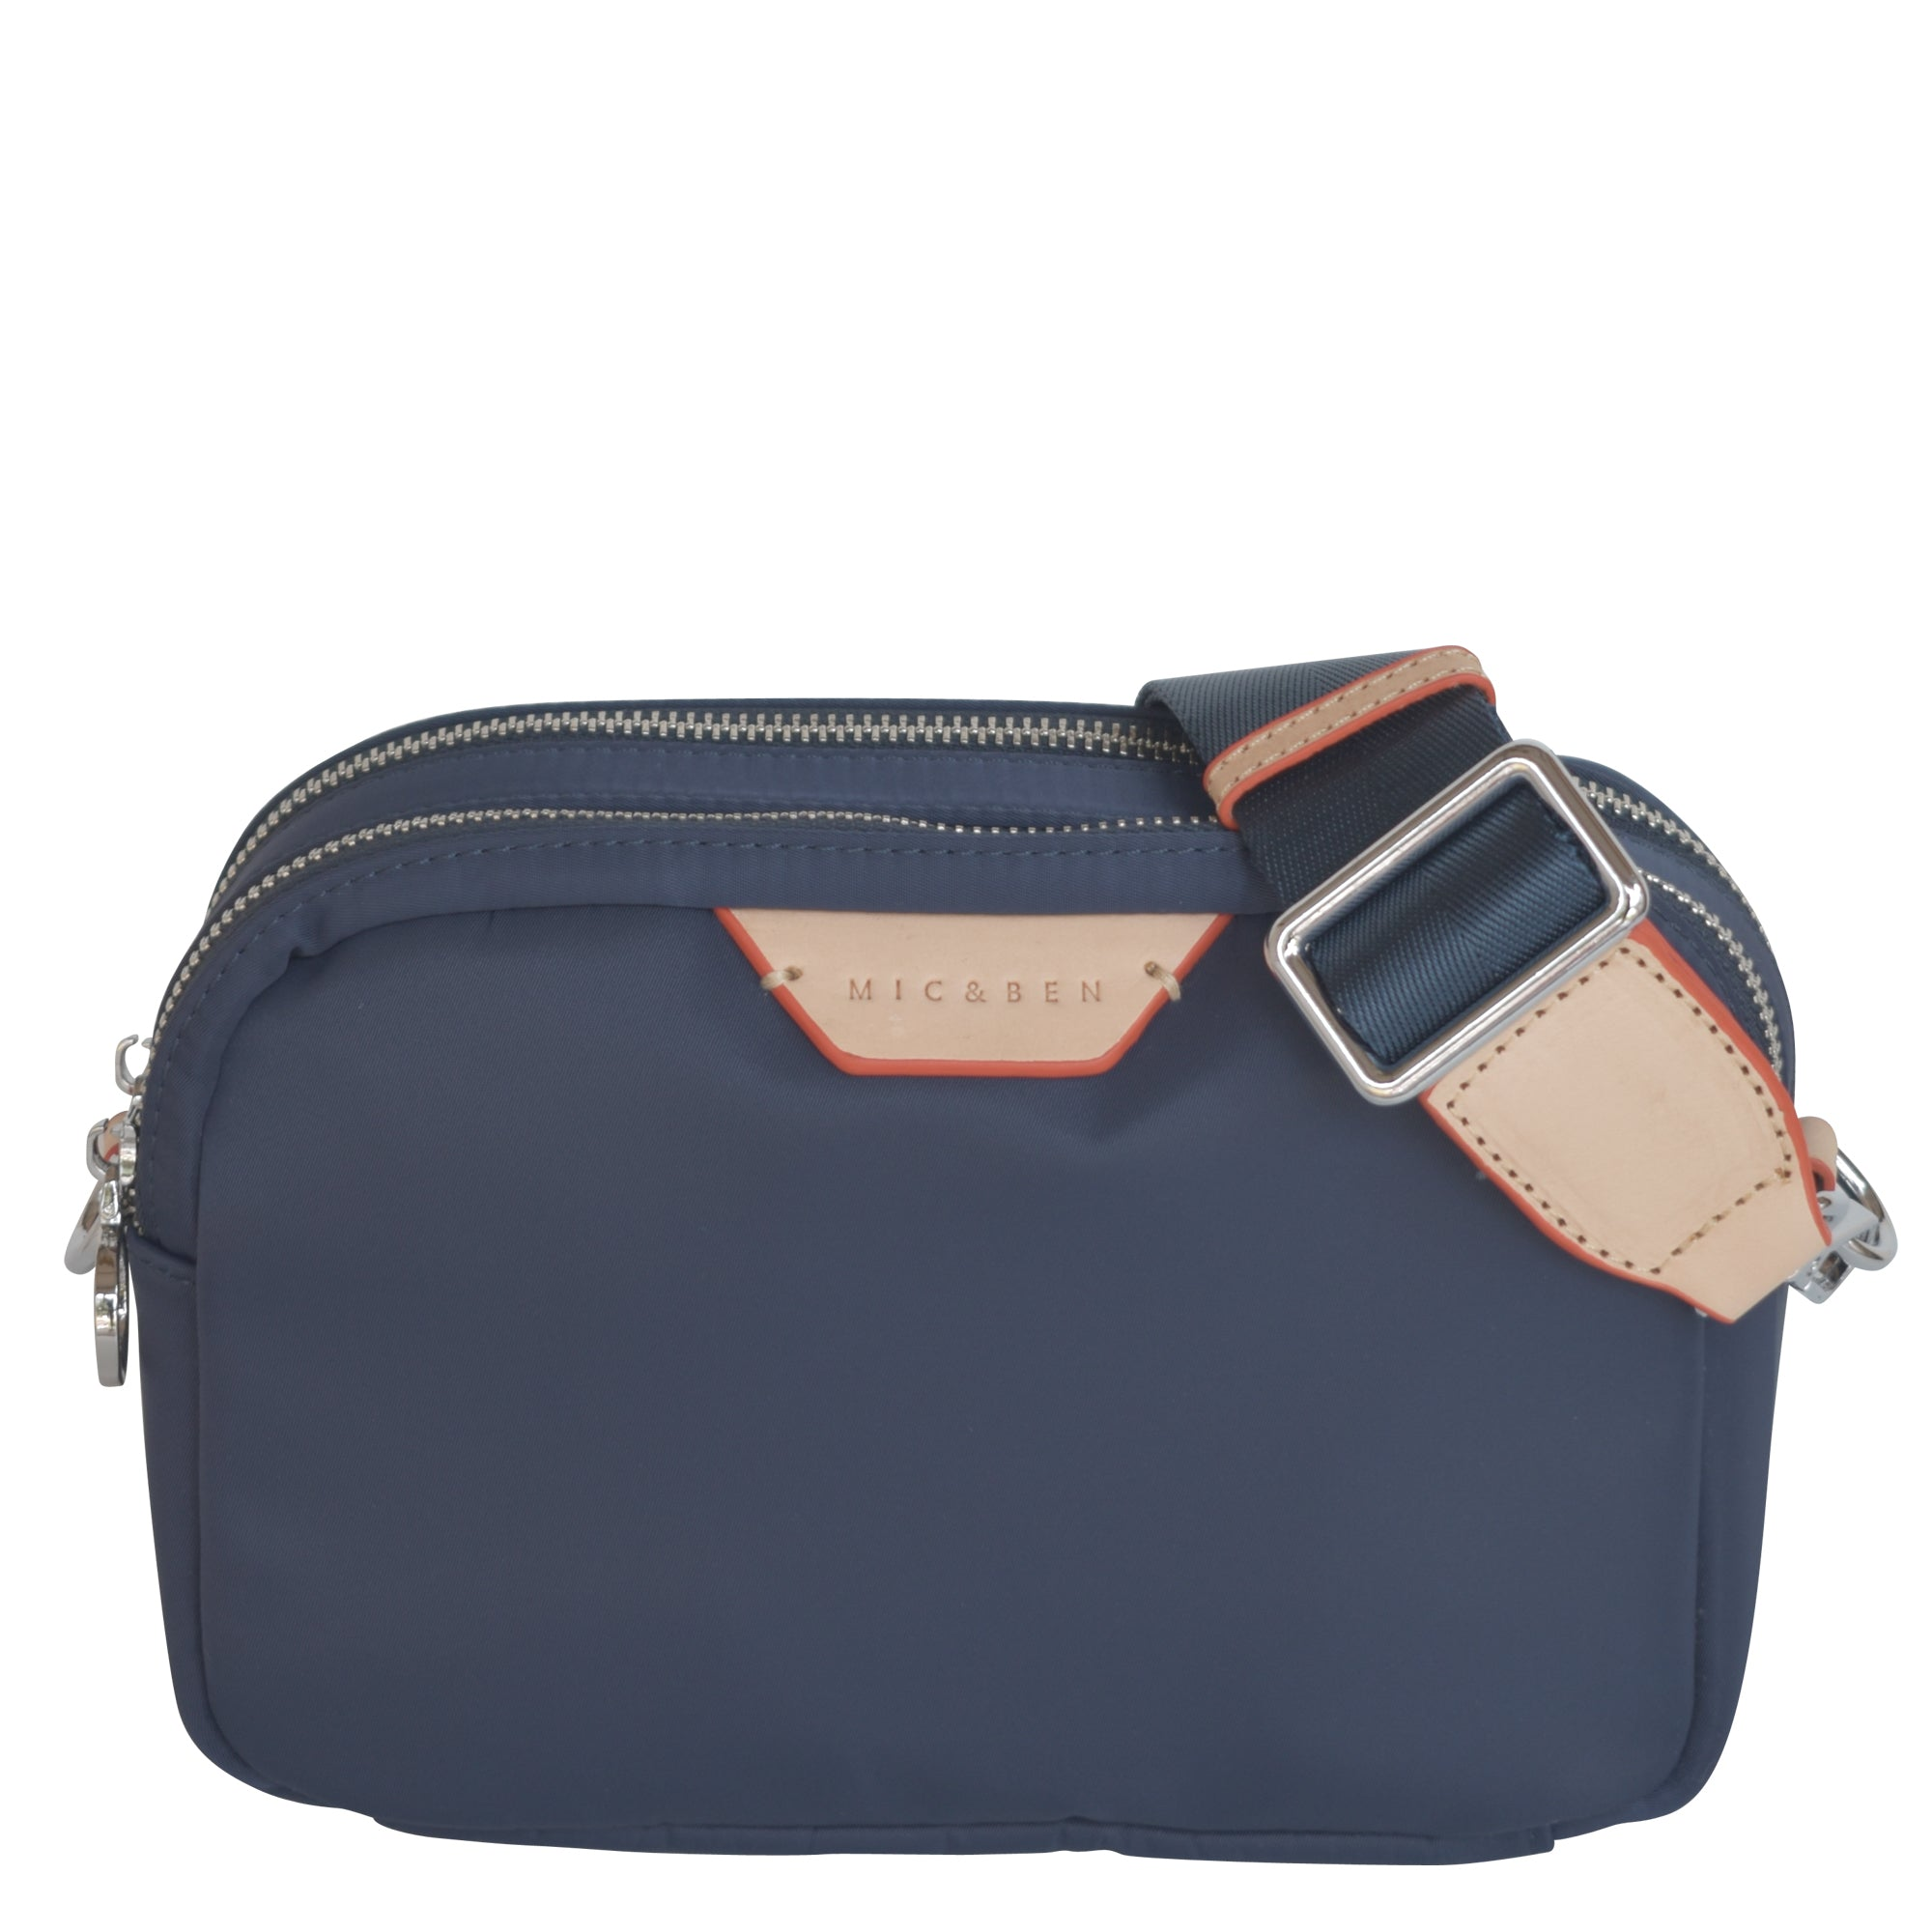 TOFU CROSSBODY BAG - INK BLUE